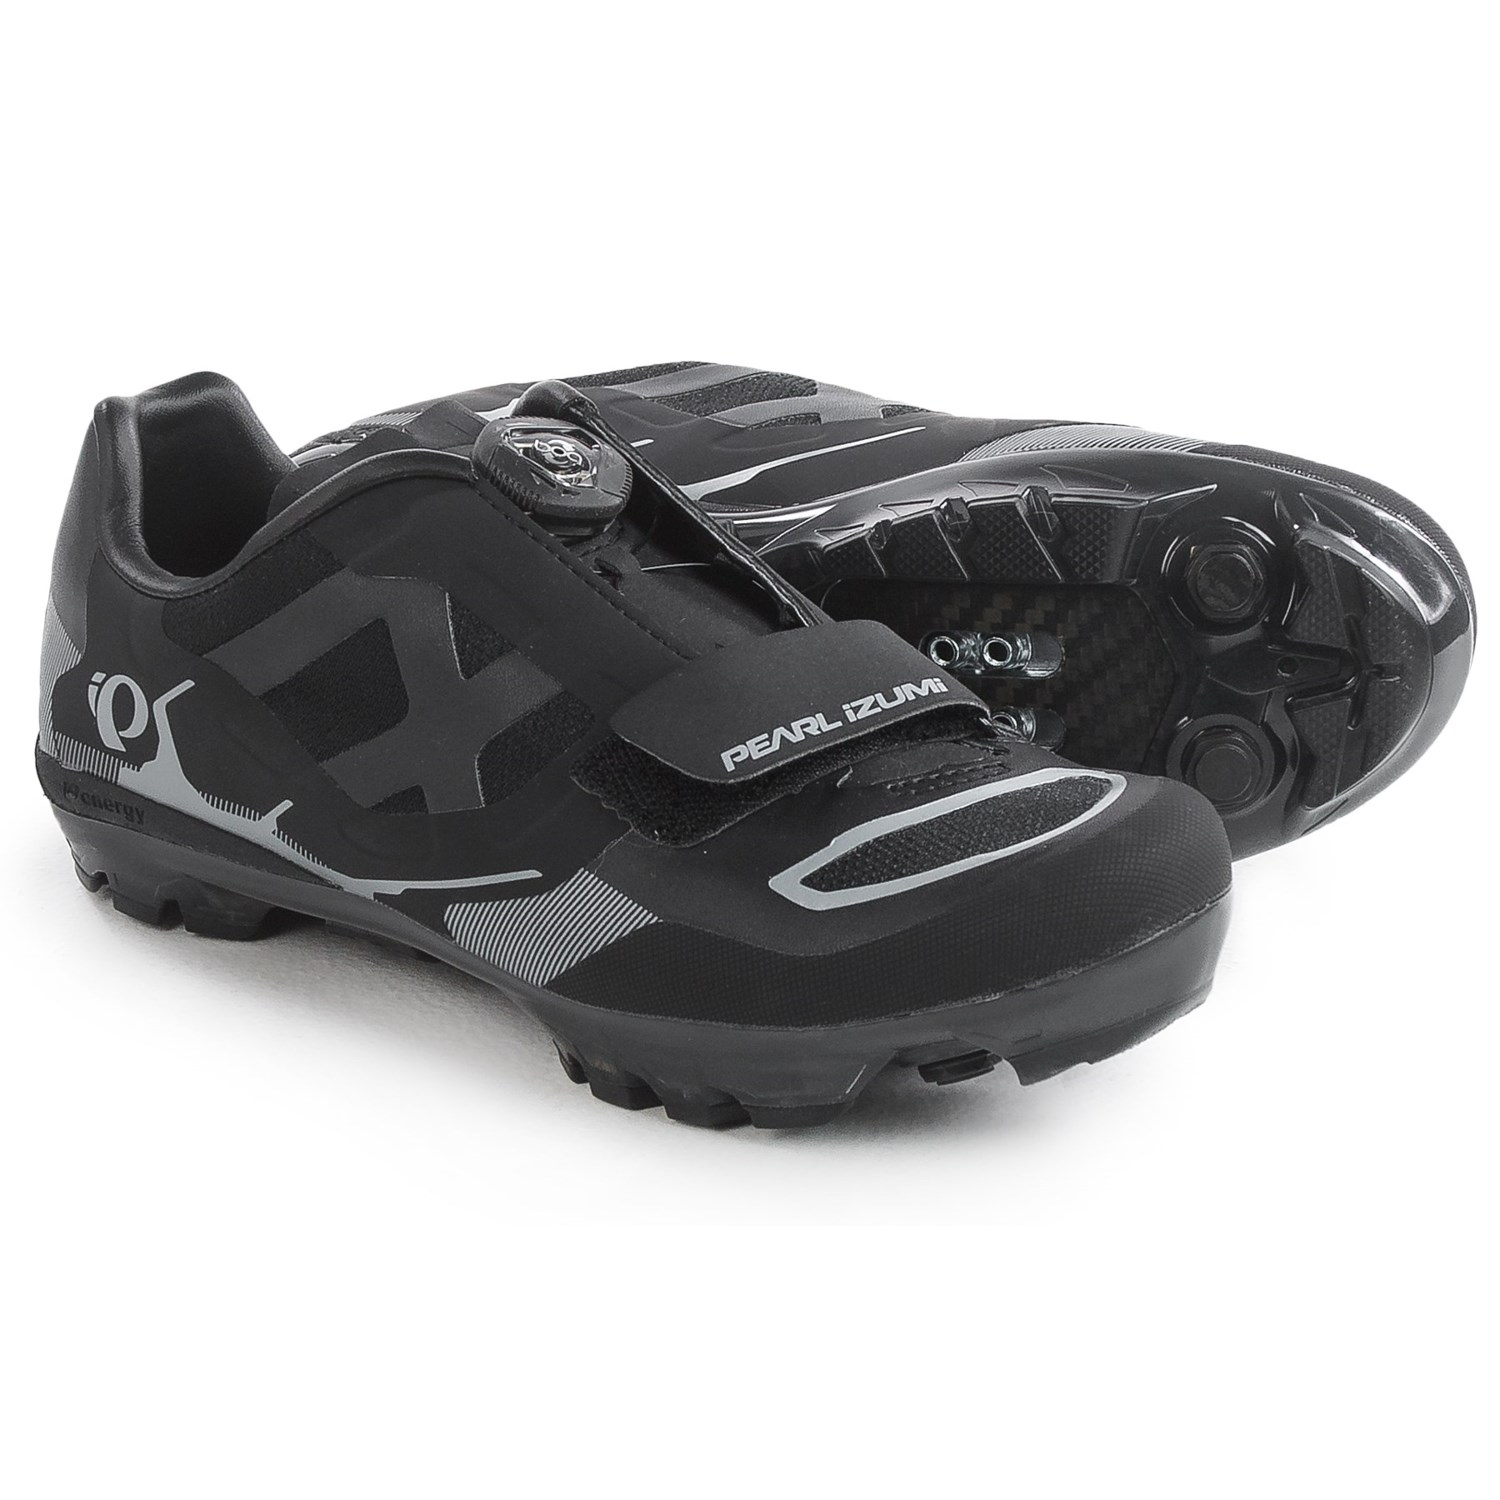 Sandals cycling shoes - Pearl Izumi X Project 2 0 Mountain Bike Shoes Spd For Women In